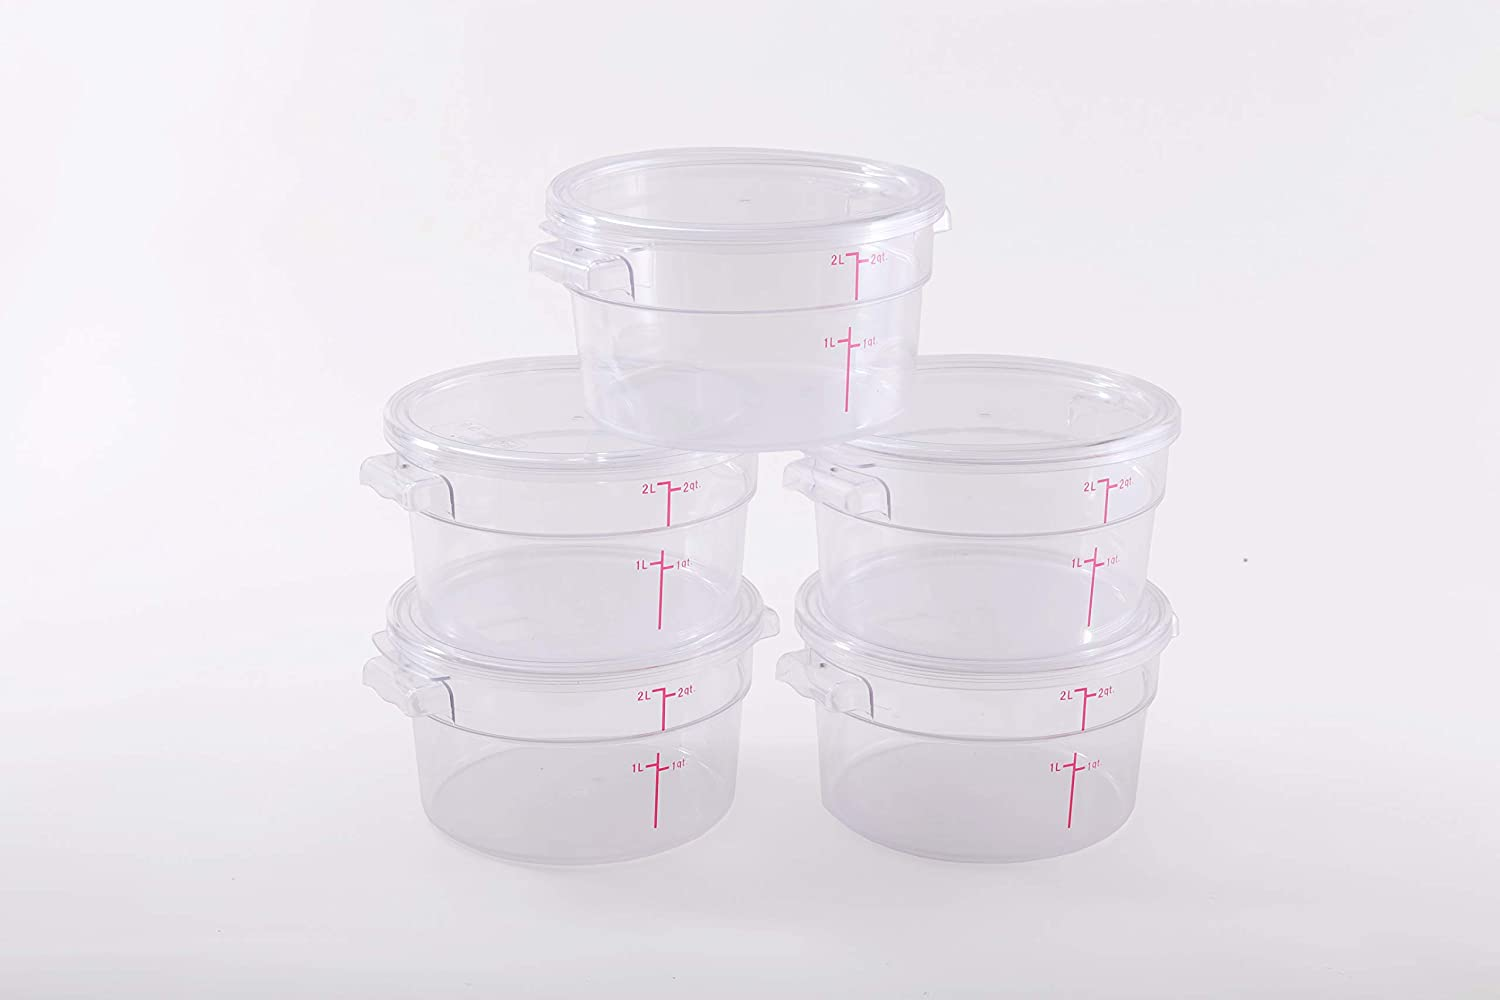 Hakka 2 Qt Commercial Grade Round Food Storage Containers with Lids,Polycarbonate,Clear - Case of 5